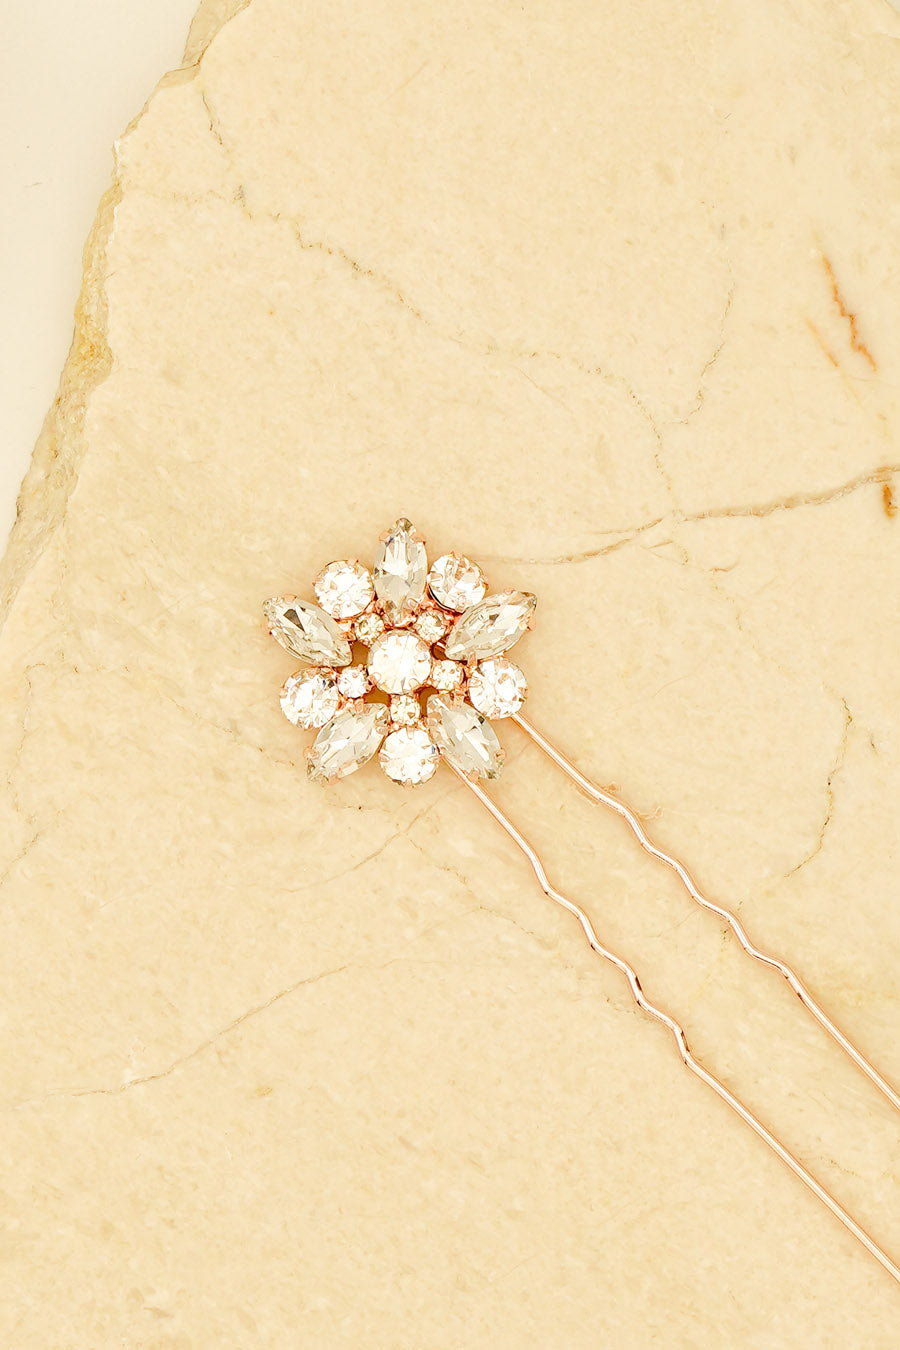 RHINESTONES ENCRUSTED FLORAL STYLES WEDDING HAIR PIN HANDMADE BRIDAL HAIRPIN BY NARIANNA